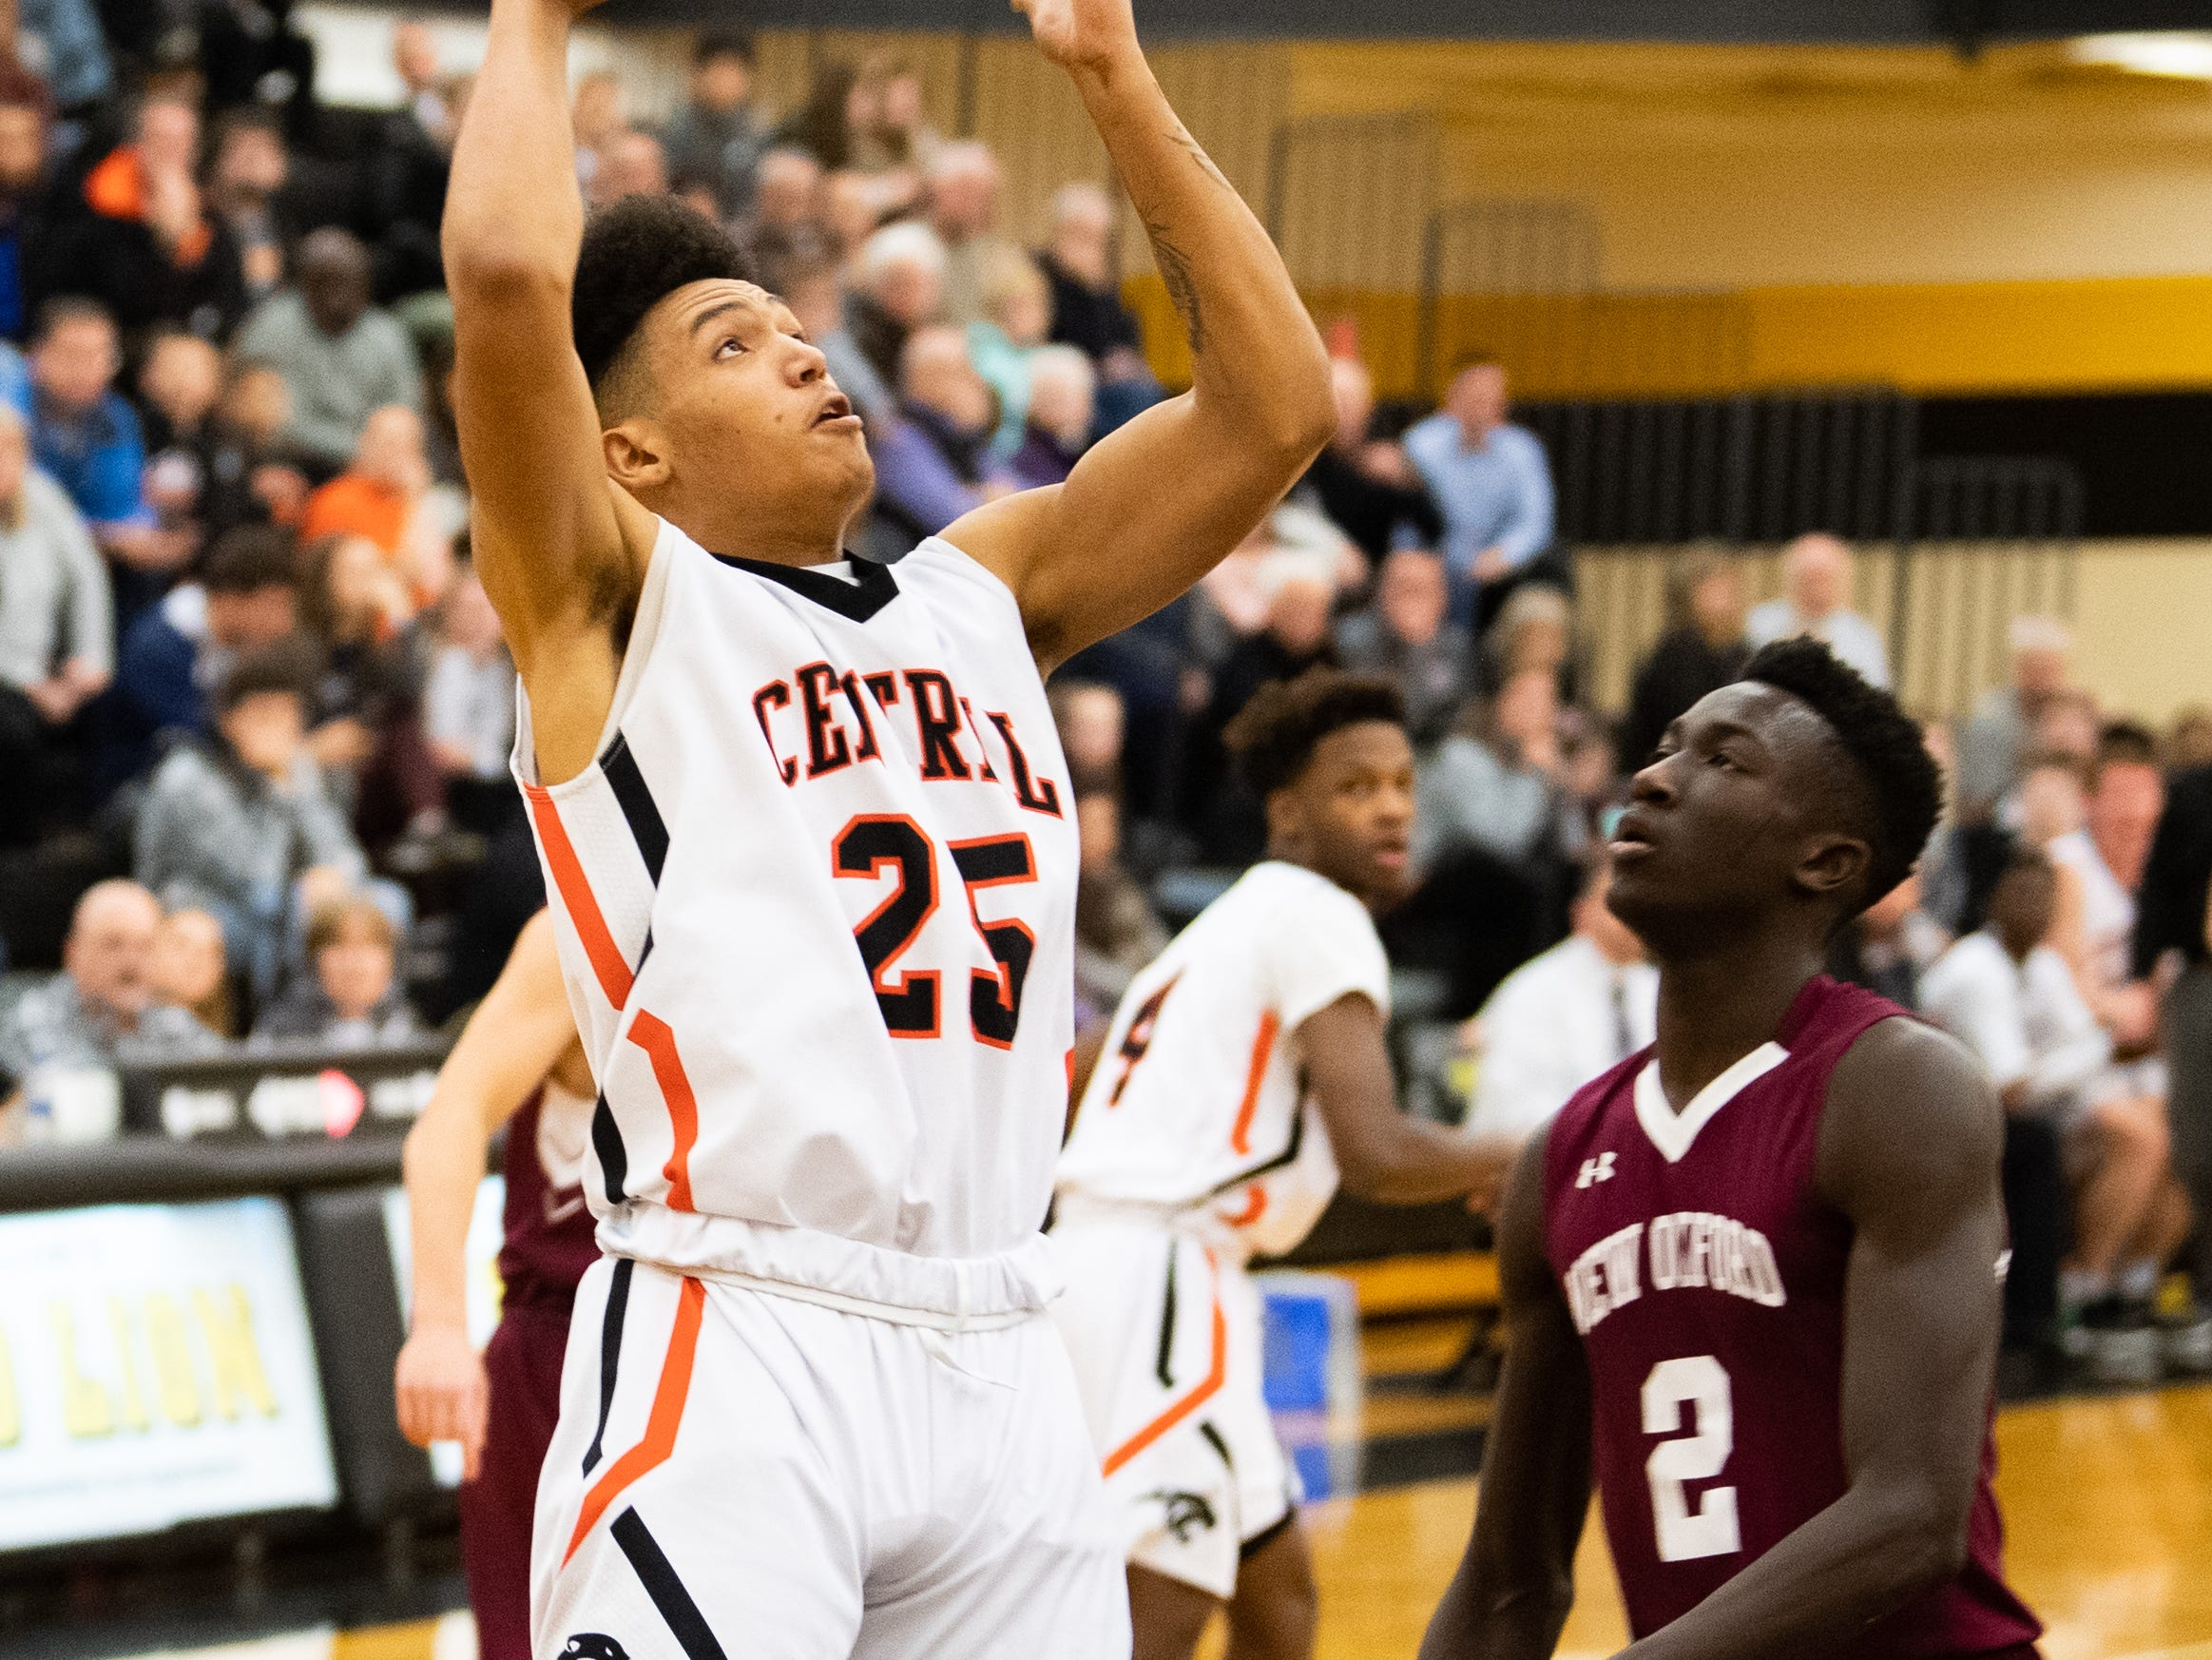 Tyquez McMillan (25) tries to score during the YAIAA boys' basketball semifinals between Central York and New Oxford, Wednesday, February 13, 2019 at Red Lion Area High School. The Colonials defeated the Panthers 43 to 41.